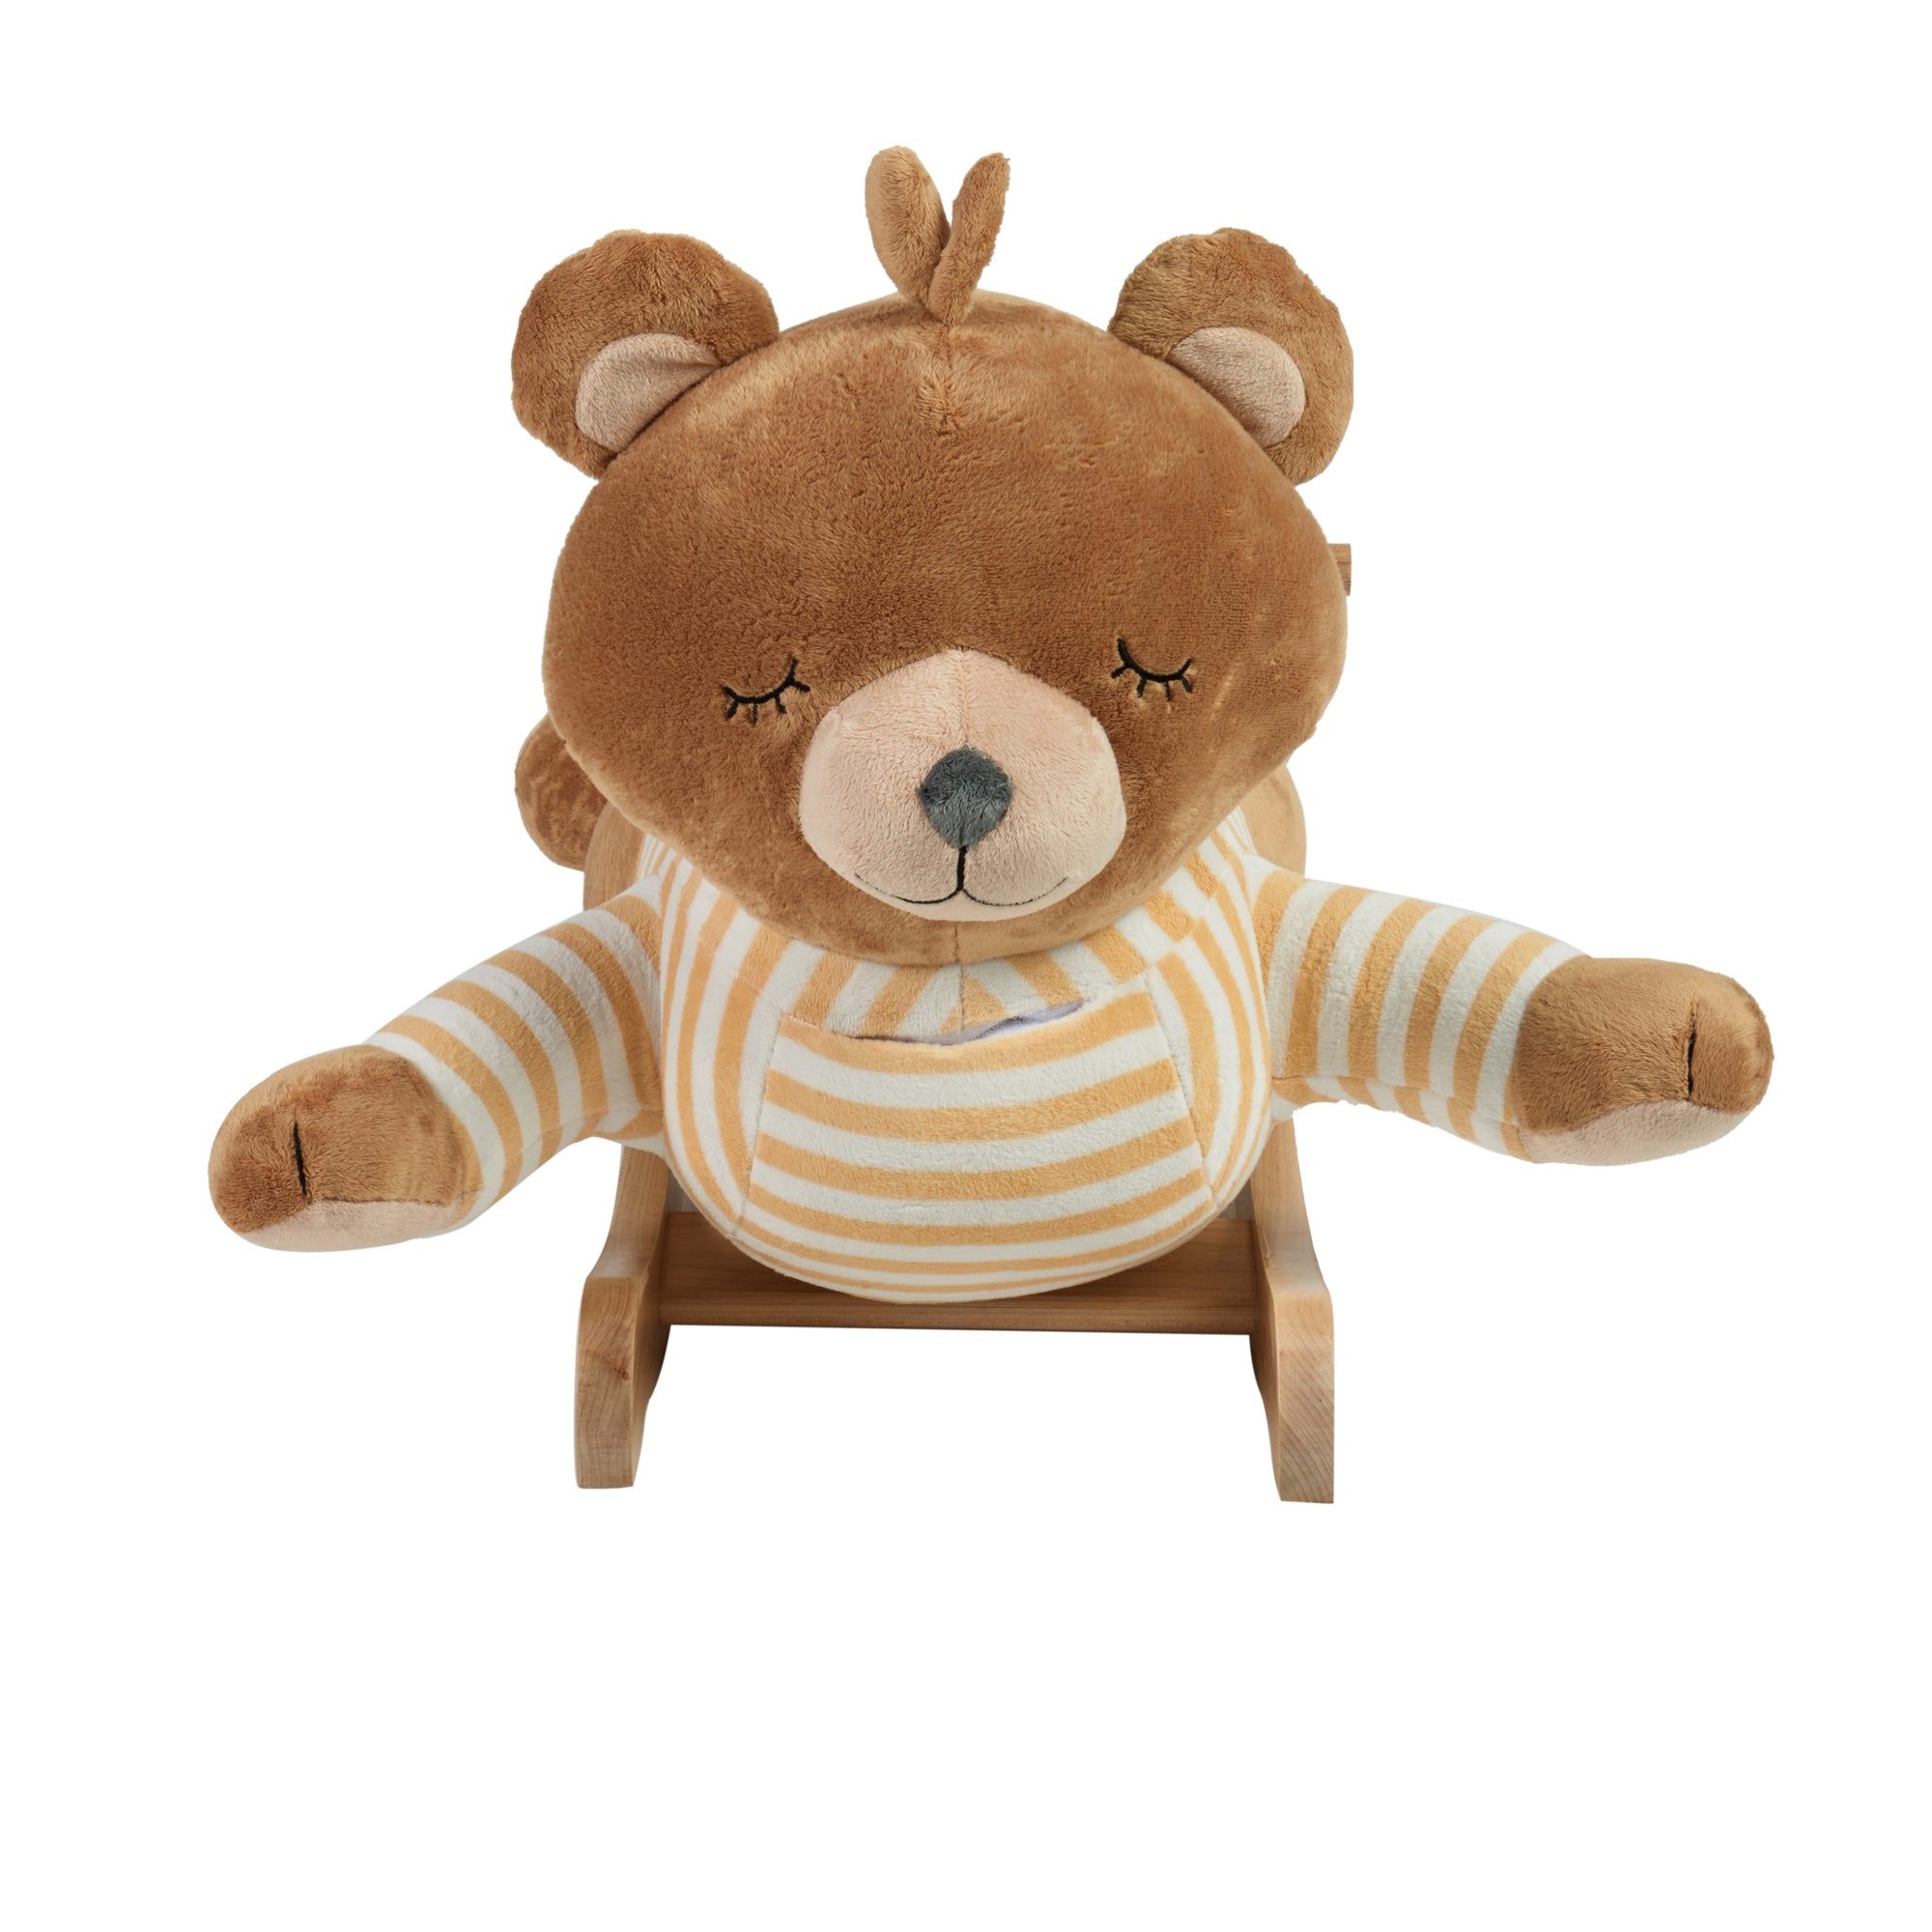 Sleepy Bear Classic rockAbye